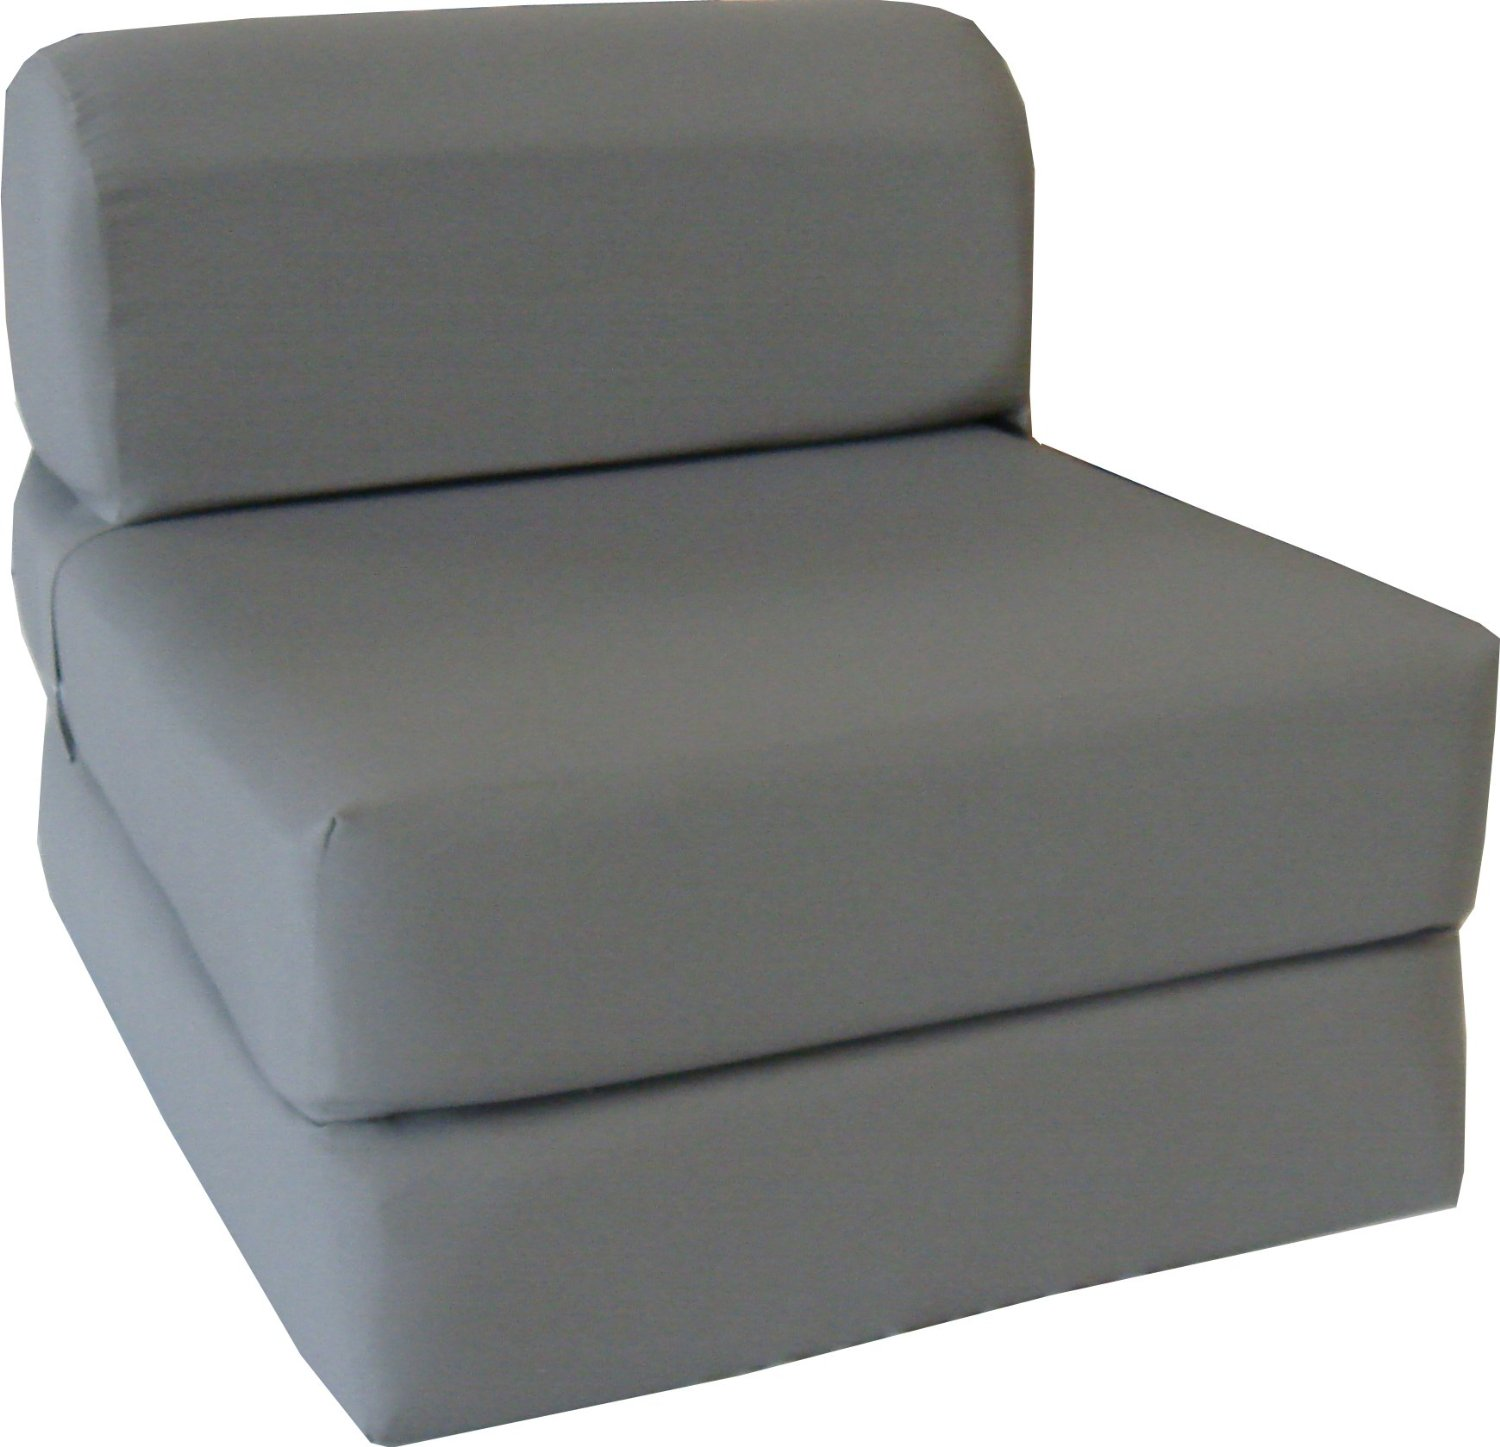 Gray Sleeper Chair Folding Foam Bed Sized 6 Thick X 32 Wide 70